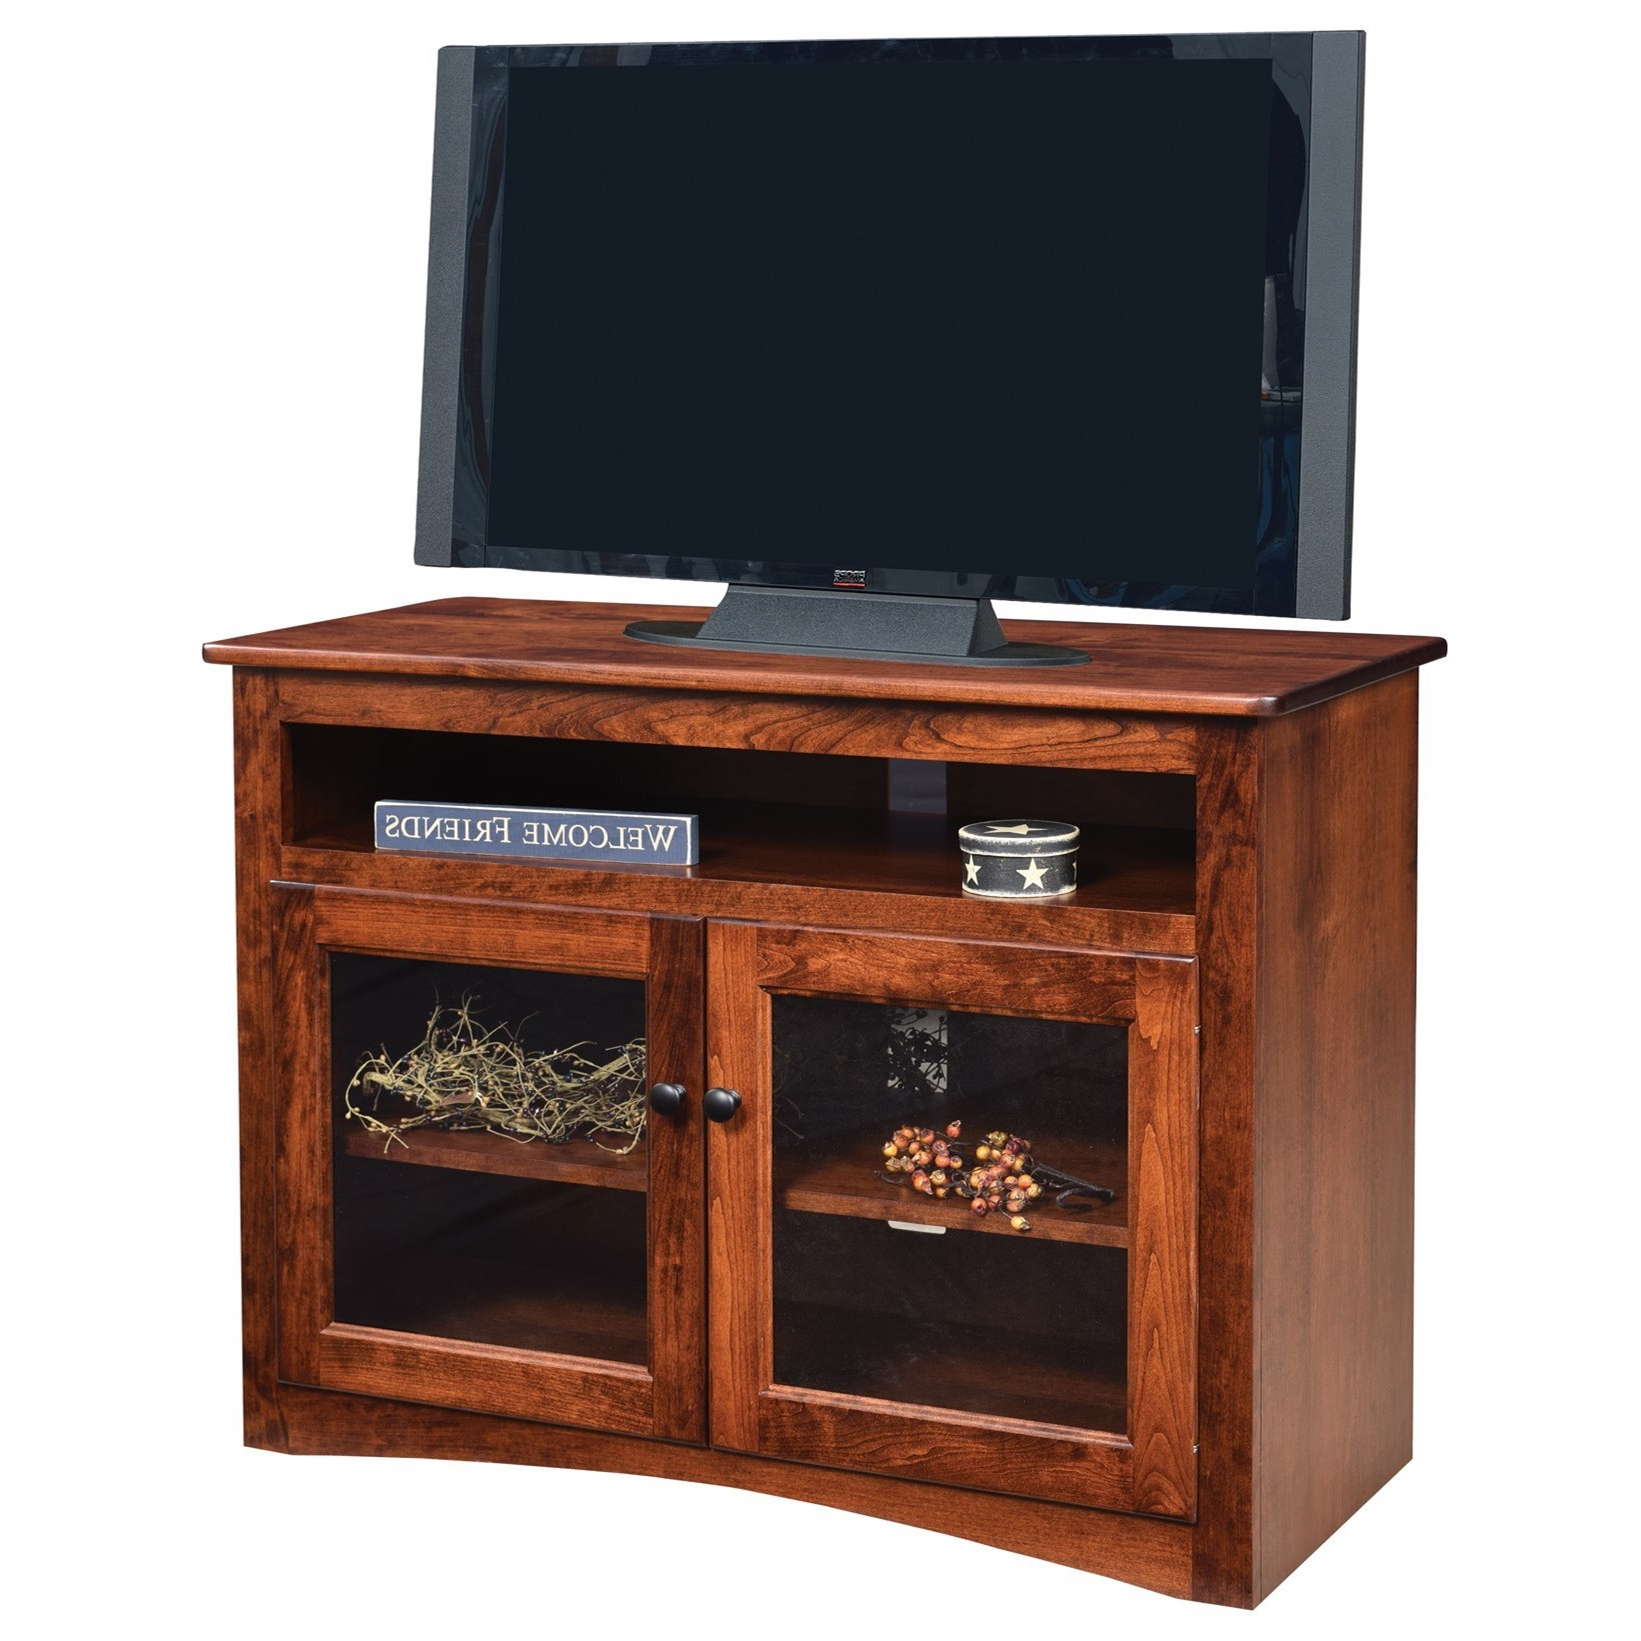 """Preferred Modern Tv Stands In Oak Wood And Black Accents With Storage Doors Within Ashery Oak Economy 40"""" Customizable Solid Wood Tv Stand (View 4 of 10)"""